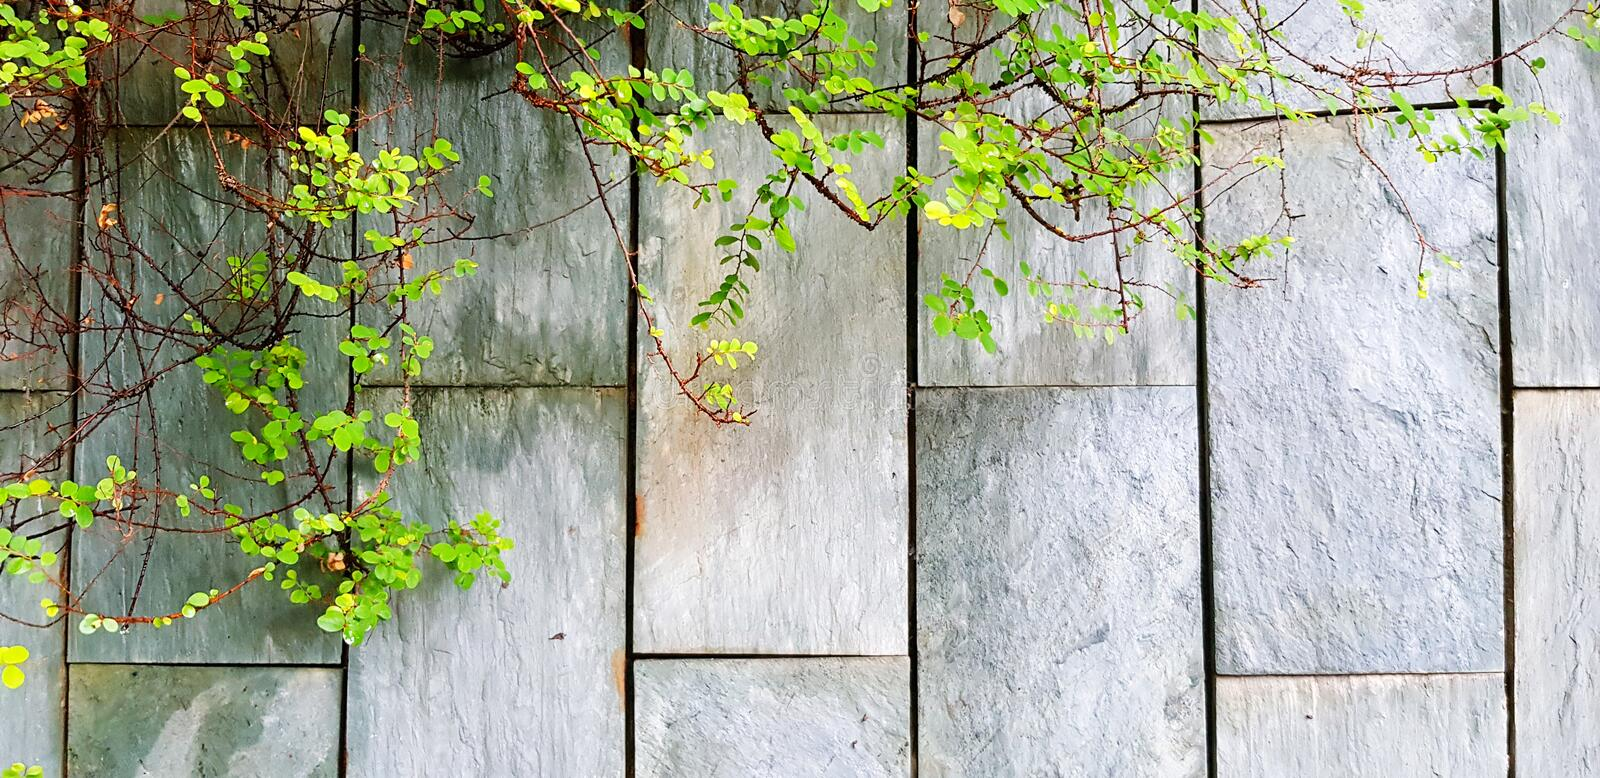 Green vine, ivy or creeping plant growth on the rough gray wall background with copy space. Nature plant and Background concept stock image